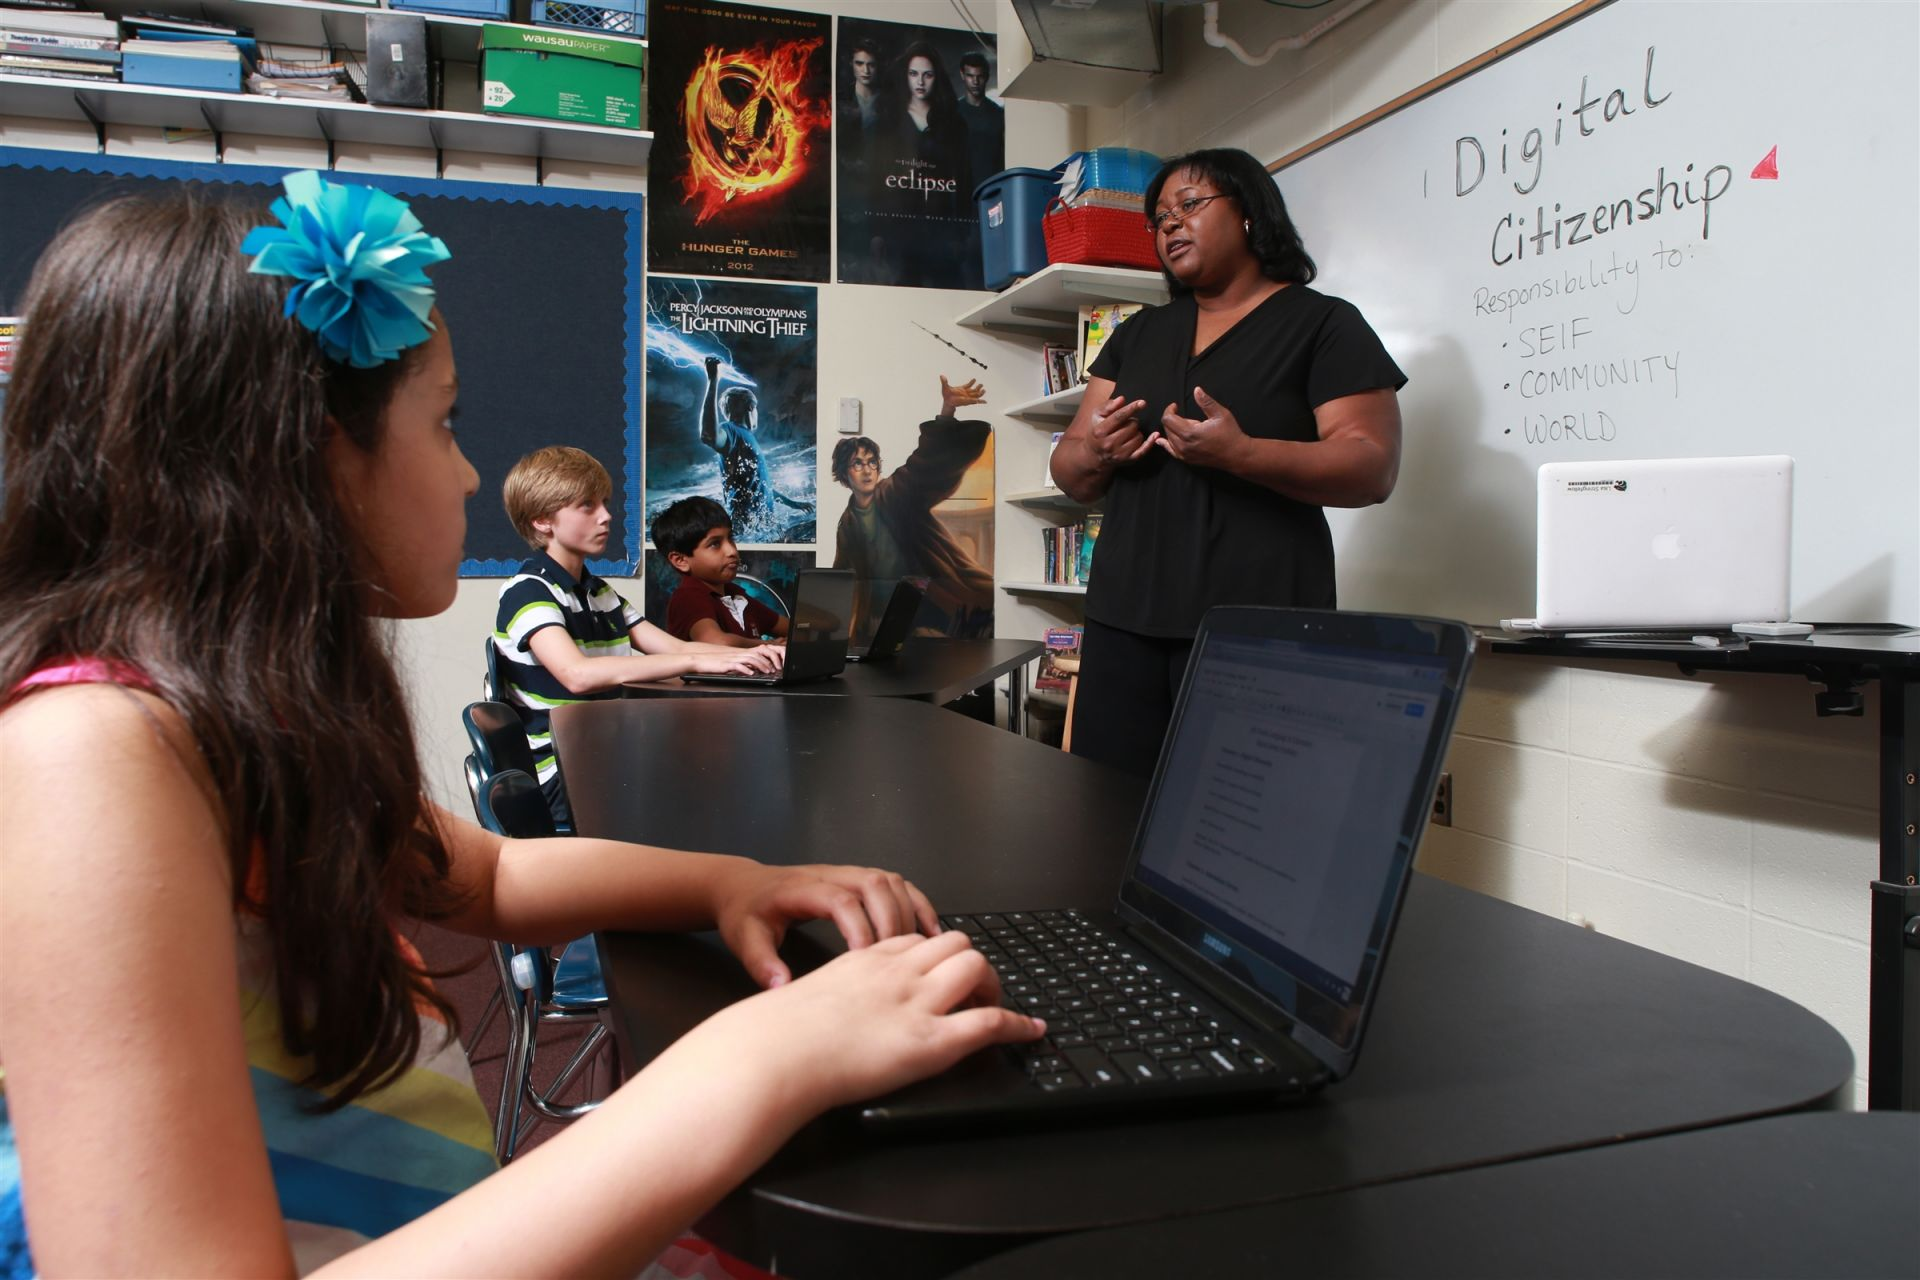 Digital literacy and citizenship is part of the core curriculum.